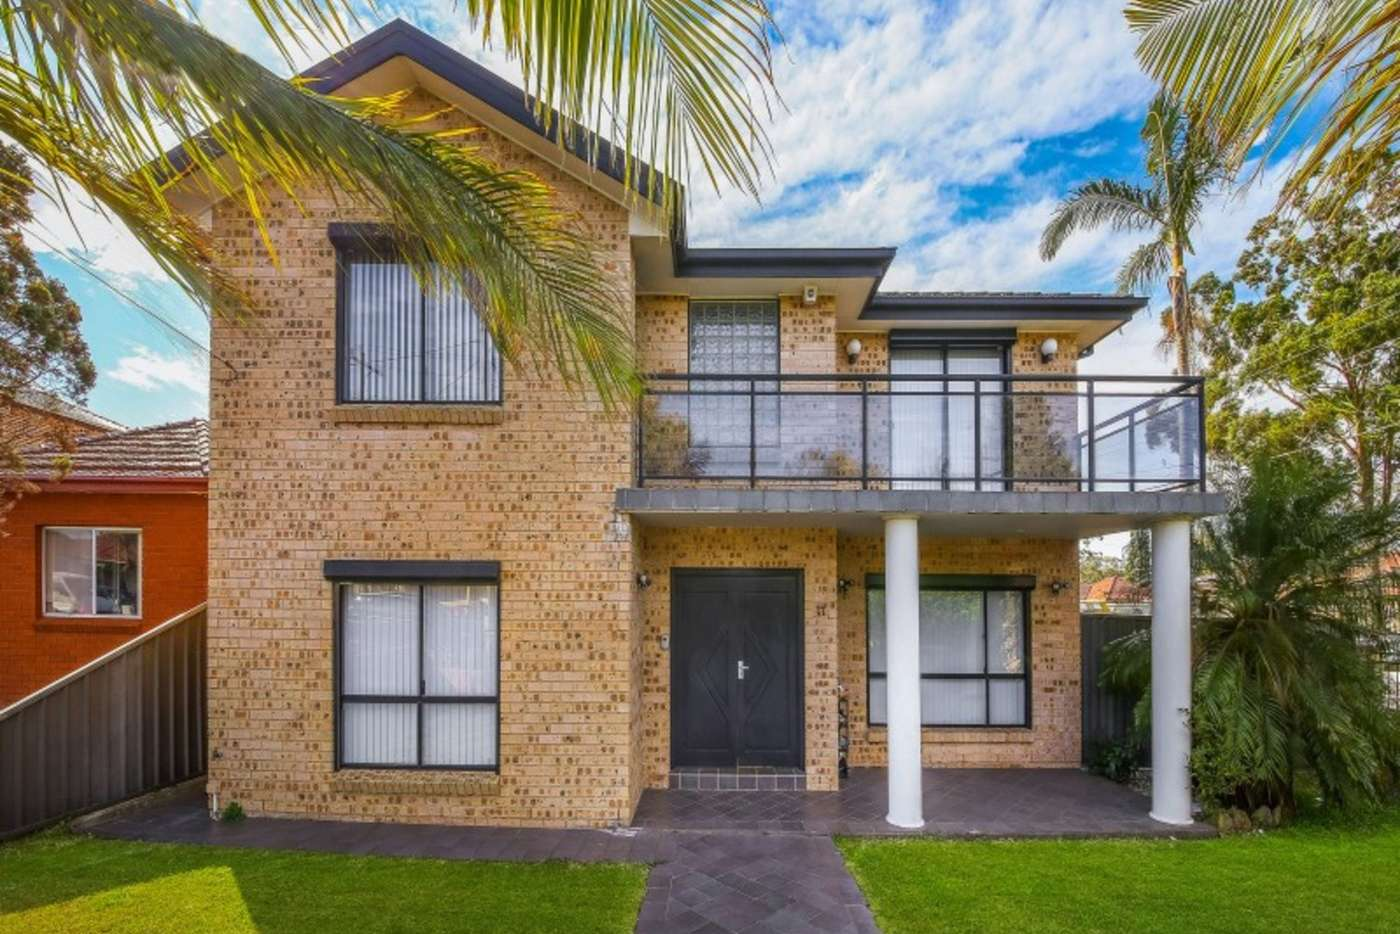 Main view of Homely house listing, 17 Matthew Street, Merrylands NSW 2160